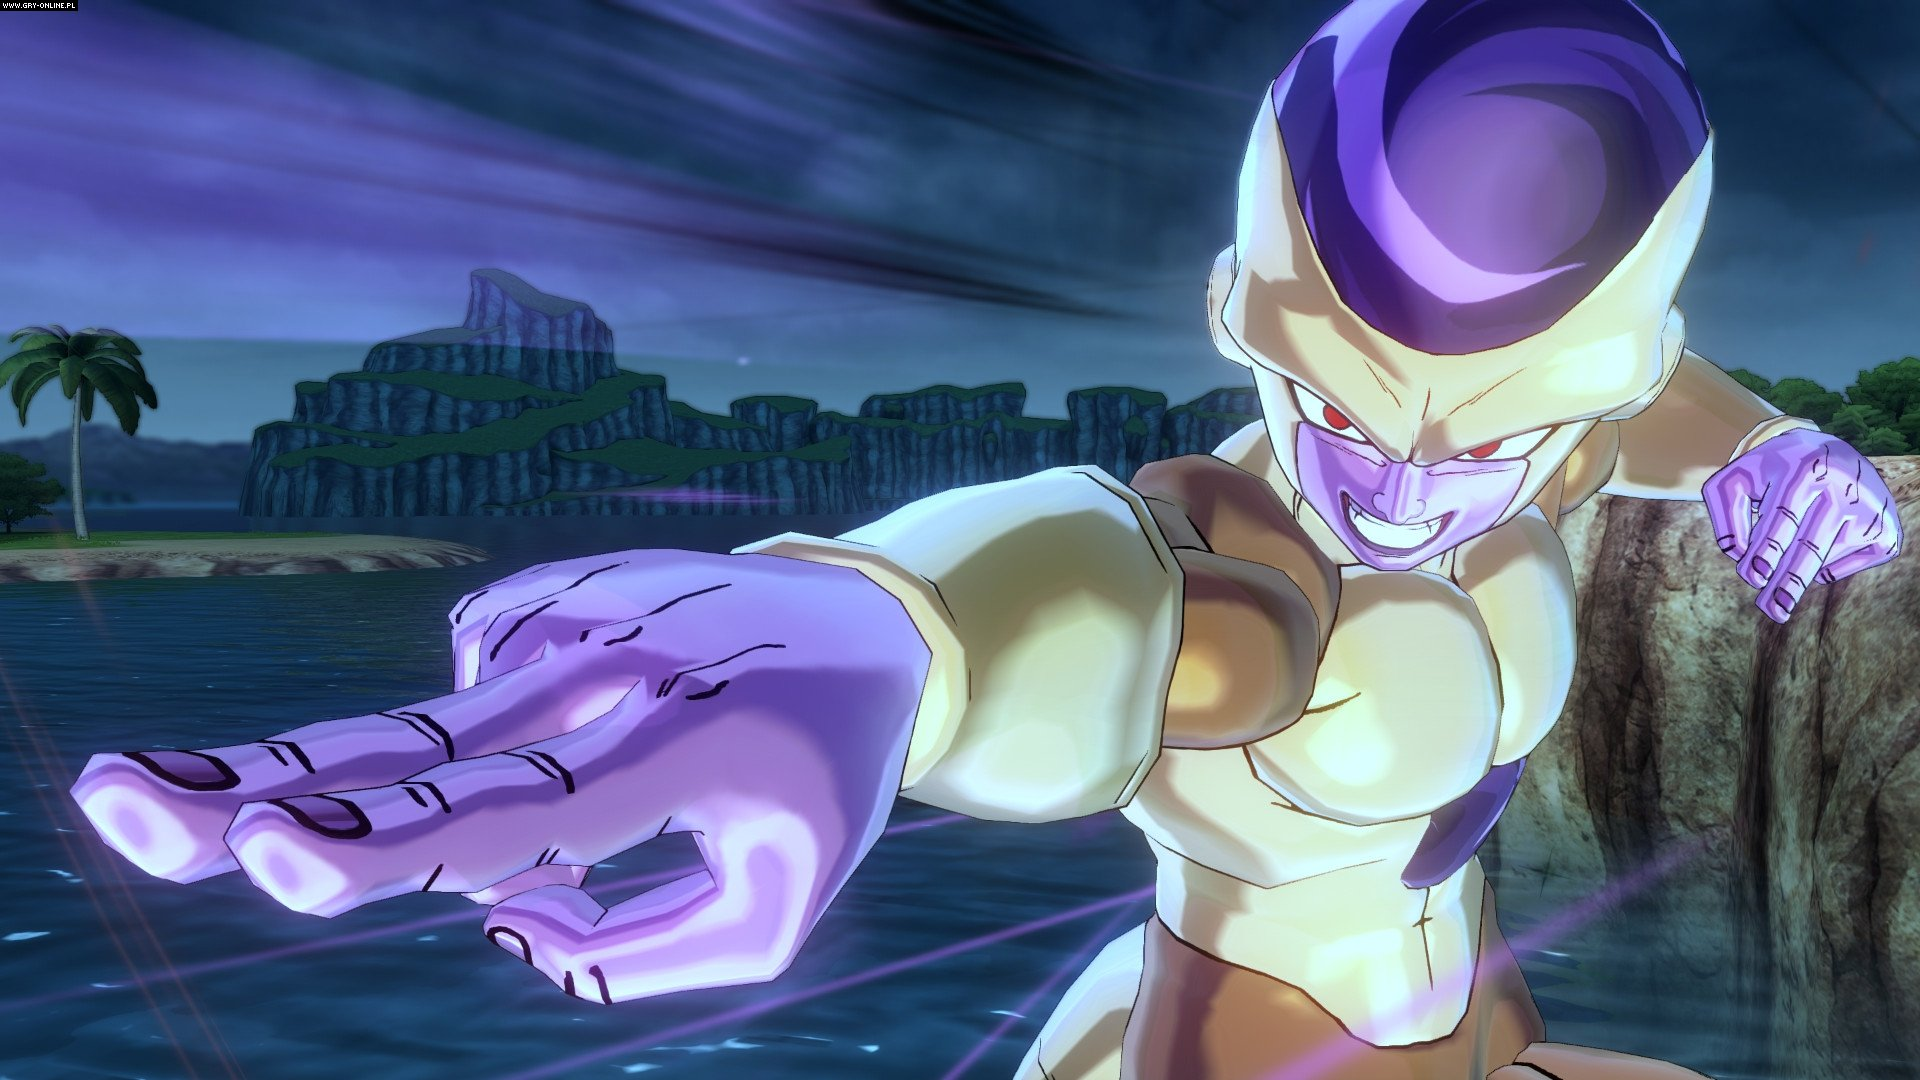 Dragon Ball: Xenoverse 2 PC, PS4, XONE Games Image 18/56, Dimps Corporation, Bandai Namco Entertainment